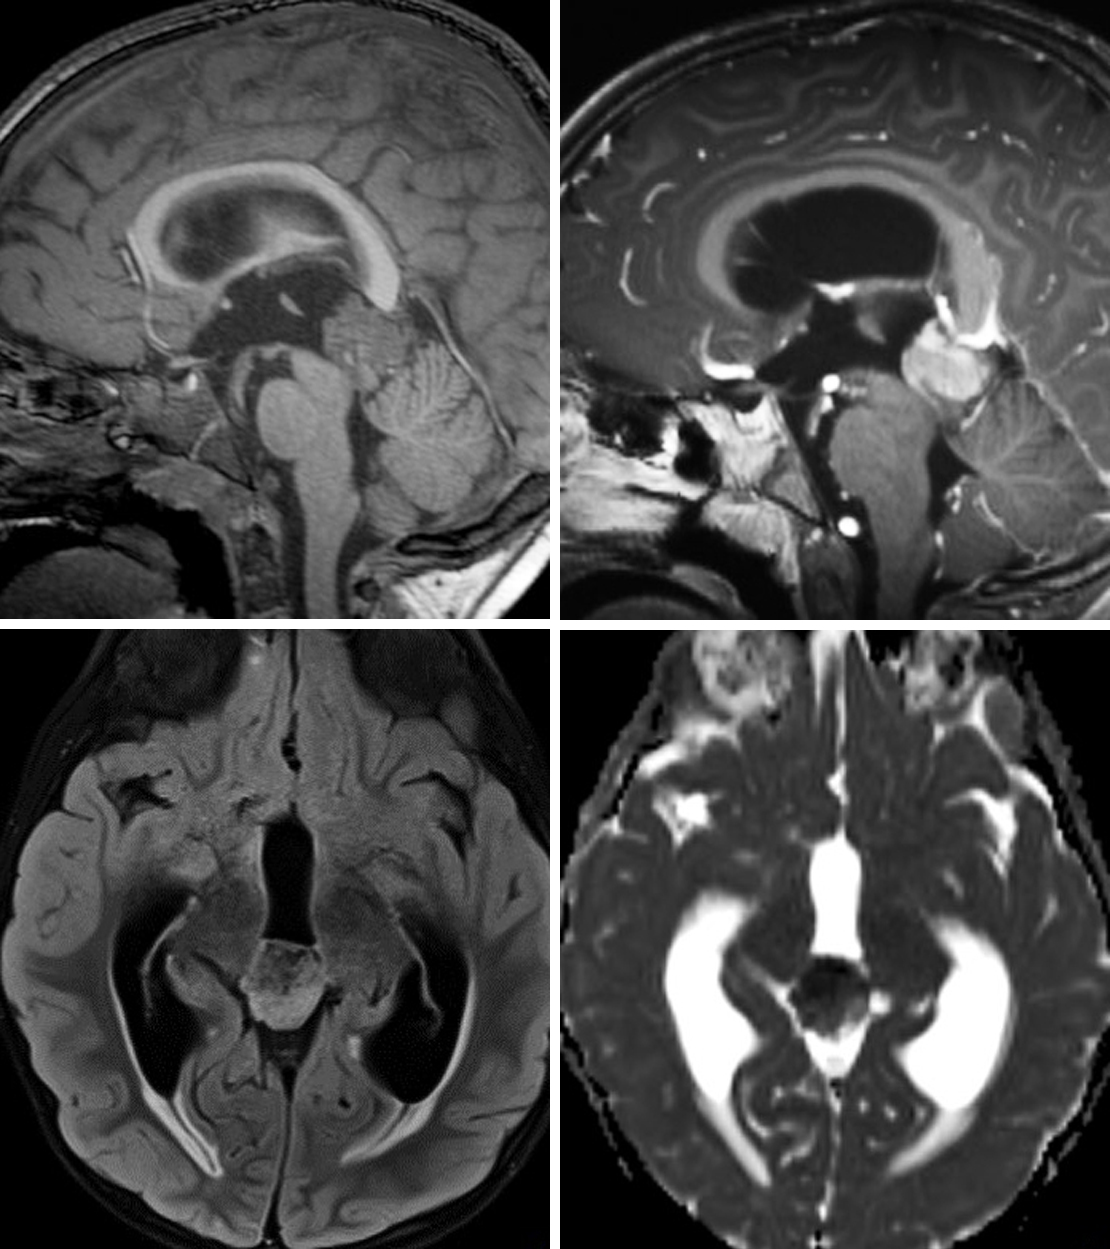 Figure 1: (Top Left) This pineoblastoma demonstrates invasion into the superior tectal plate on sagittal T1WI. (Top Right) After administration of intravenous contrast, the lesion demonstrates avid, heterogeneous enhancement. (Bottom Left) Axial FLAIR demonstrates hyperintensity typical of most tumors. (Bottom Right) This lesion has also caused obstructive hydrocephalus at the cerebral aqueduct. ADC imaging shows low-signal/restricted diffusion reflecting this lesion's hypercellularity.